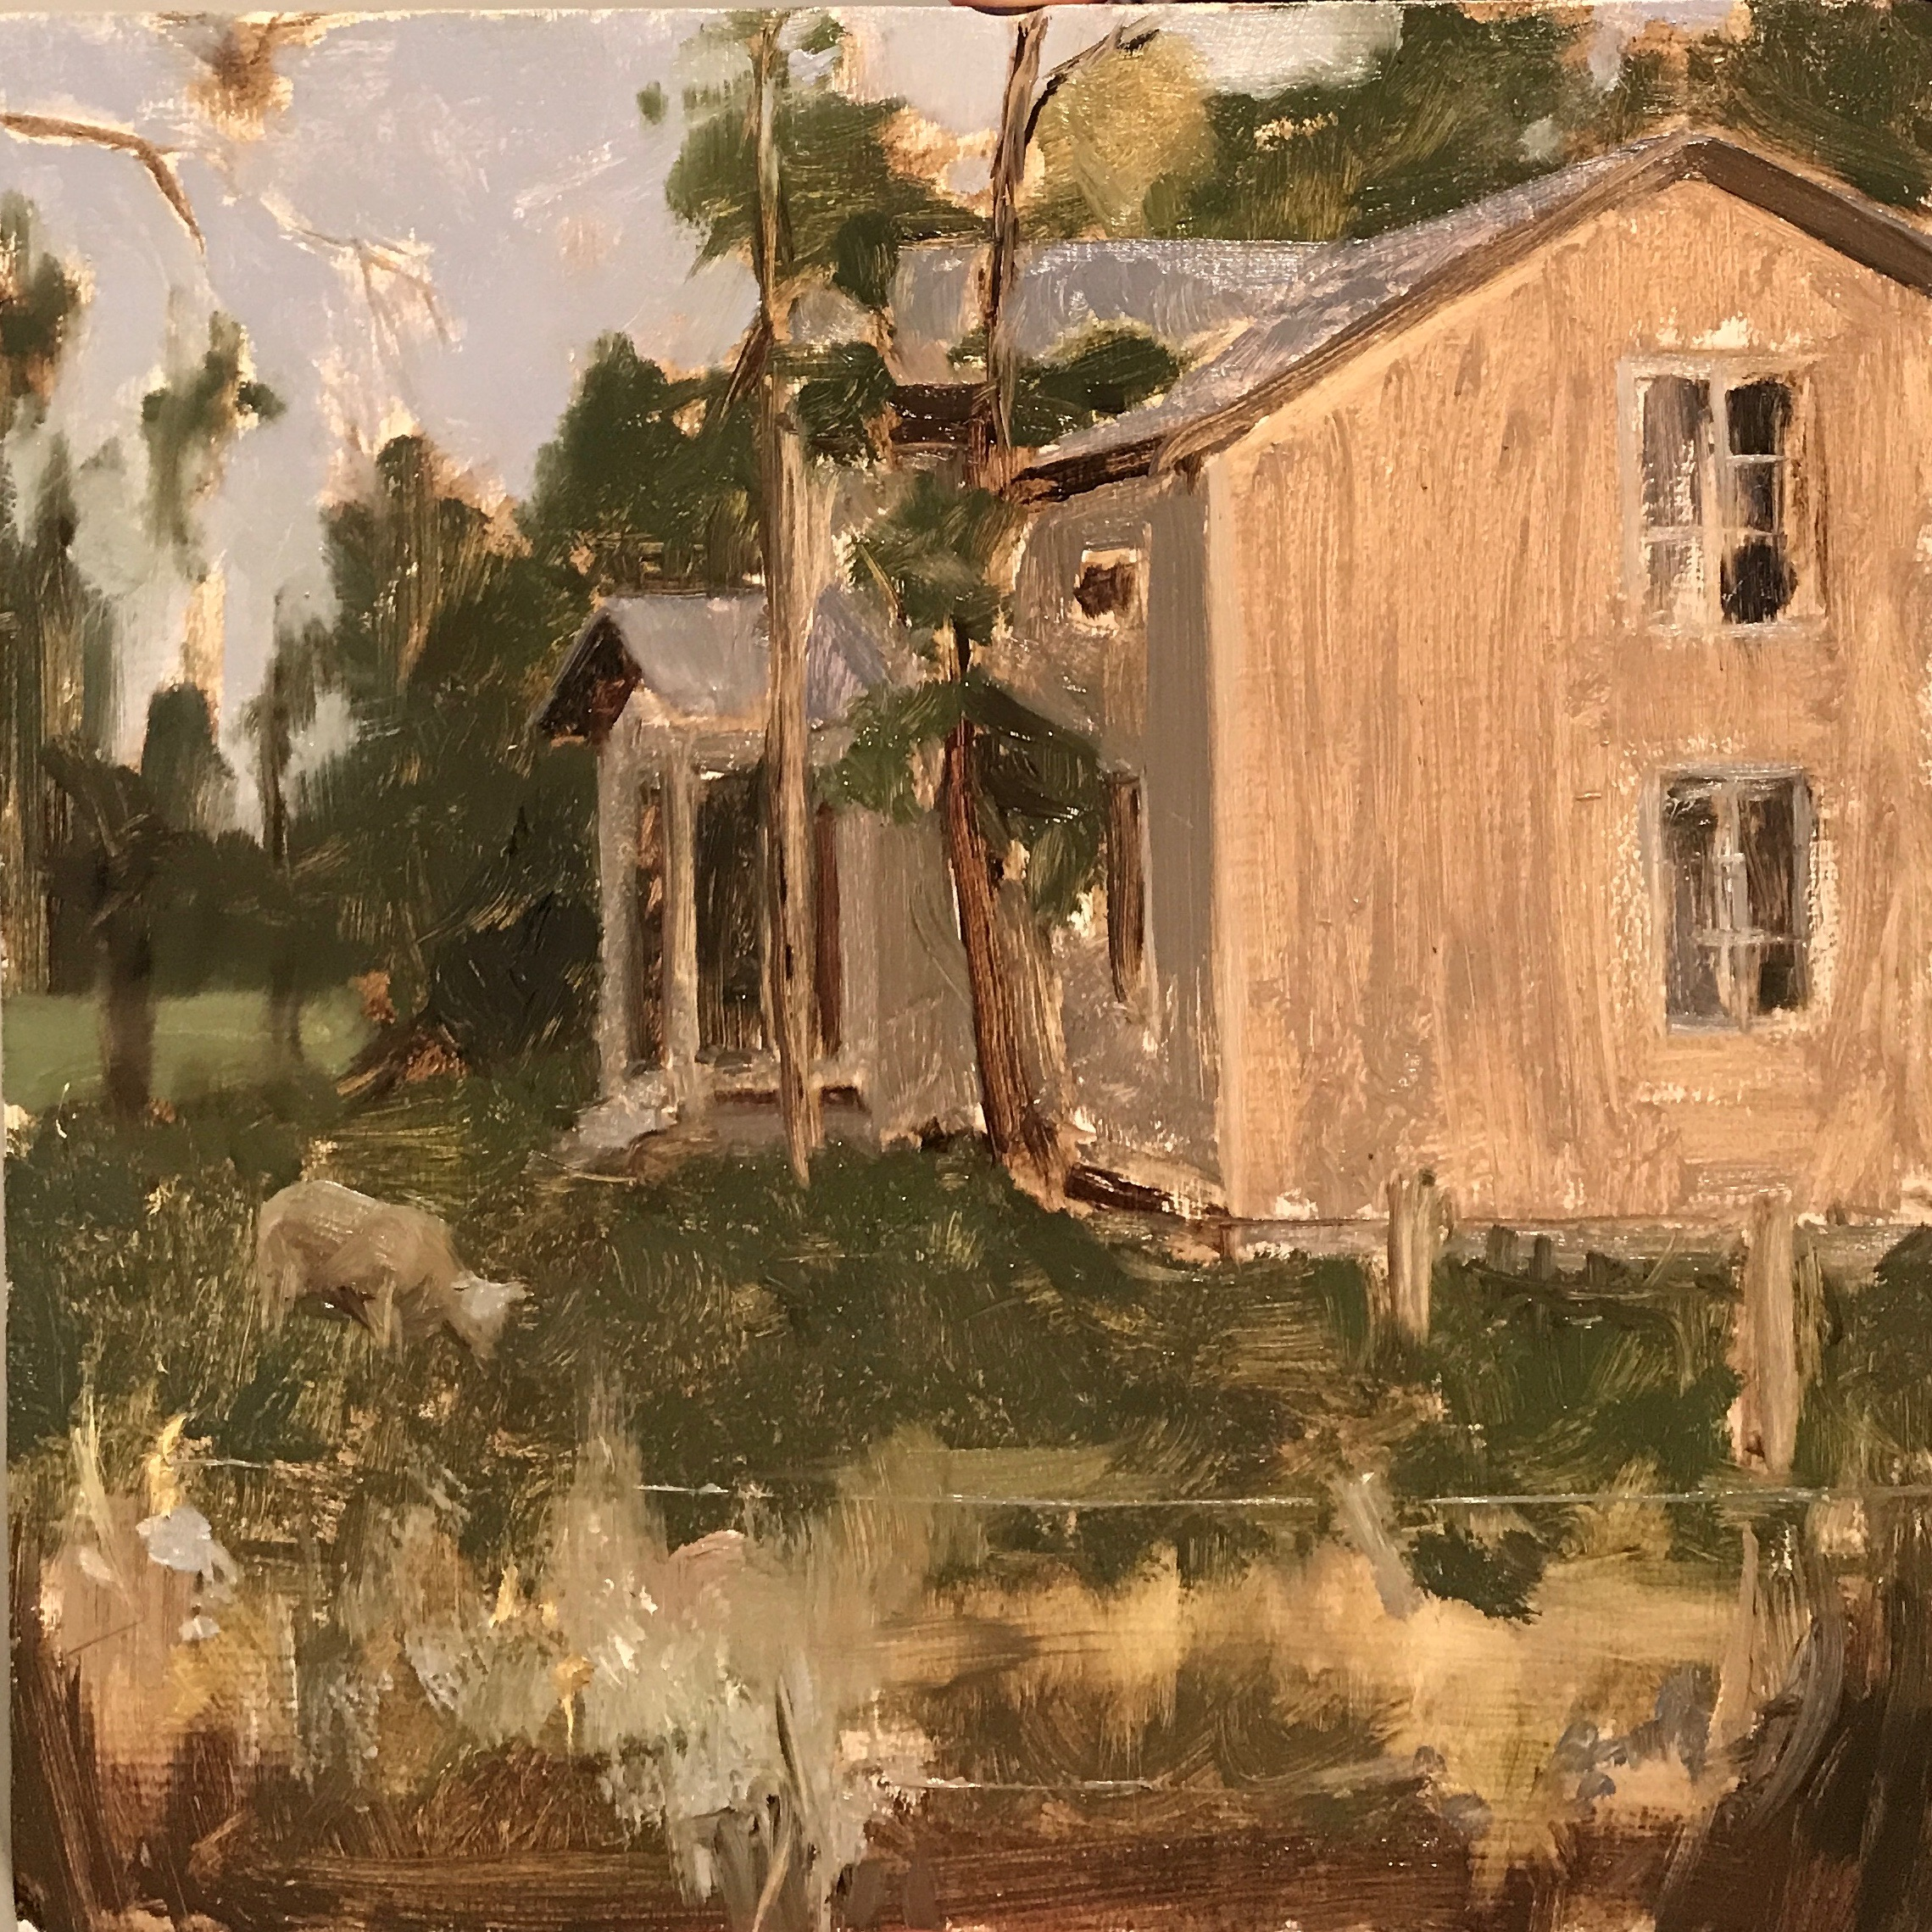 """Little 8"""" x 8"""" warm up, about an hour and a half between 8:30 and 10 pm.This abandoned """"Spook House"""" is part of the 4H sheep pen scenery.(And I thought 4H was just a rural Midwest thing.)"""